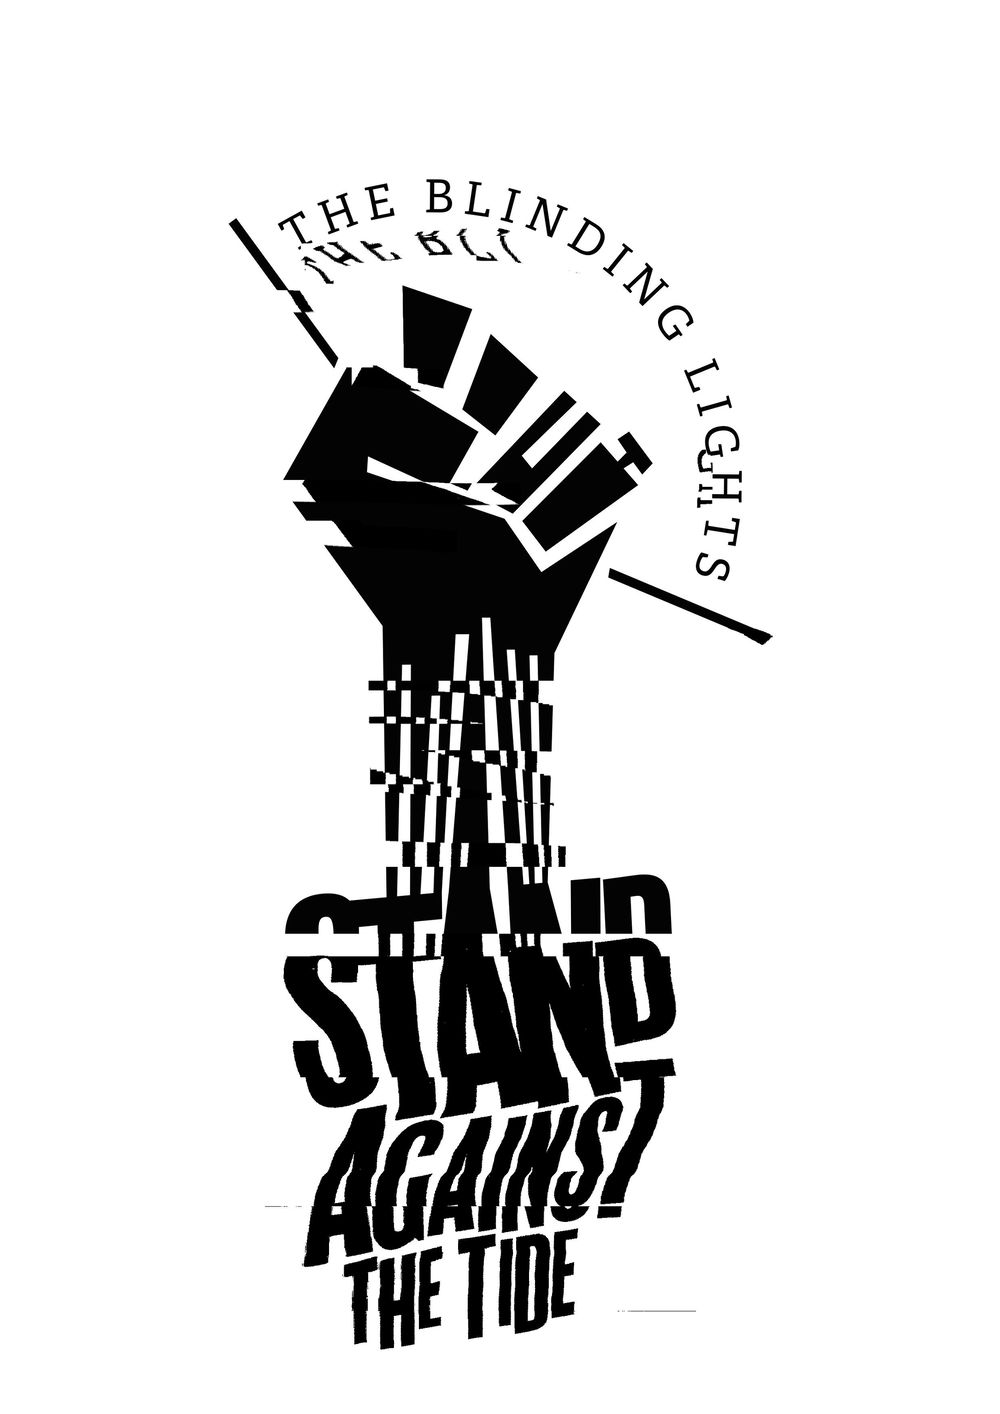 Stand Against The Tide - image 1 - student project